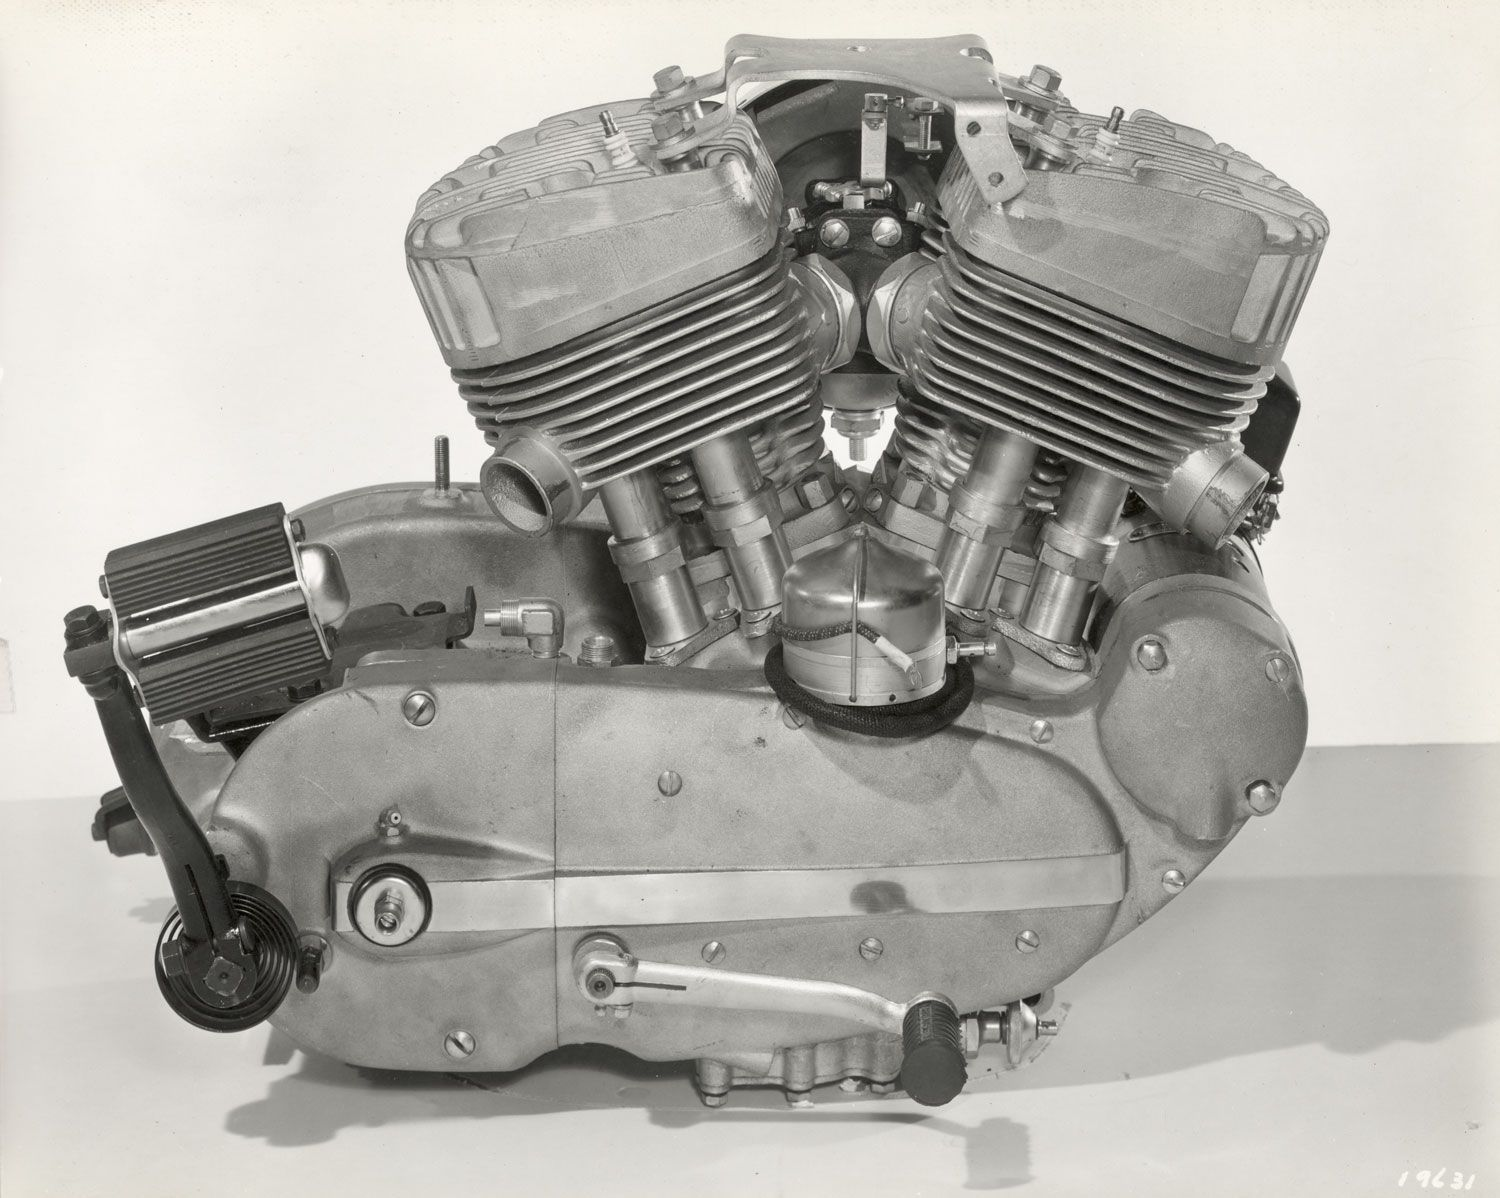 The flathead configuration of the K series eventually gave way to OHV.